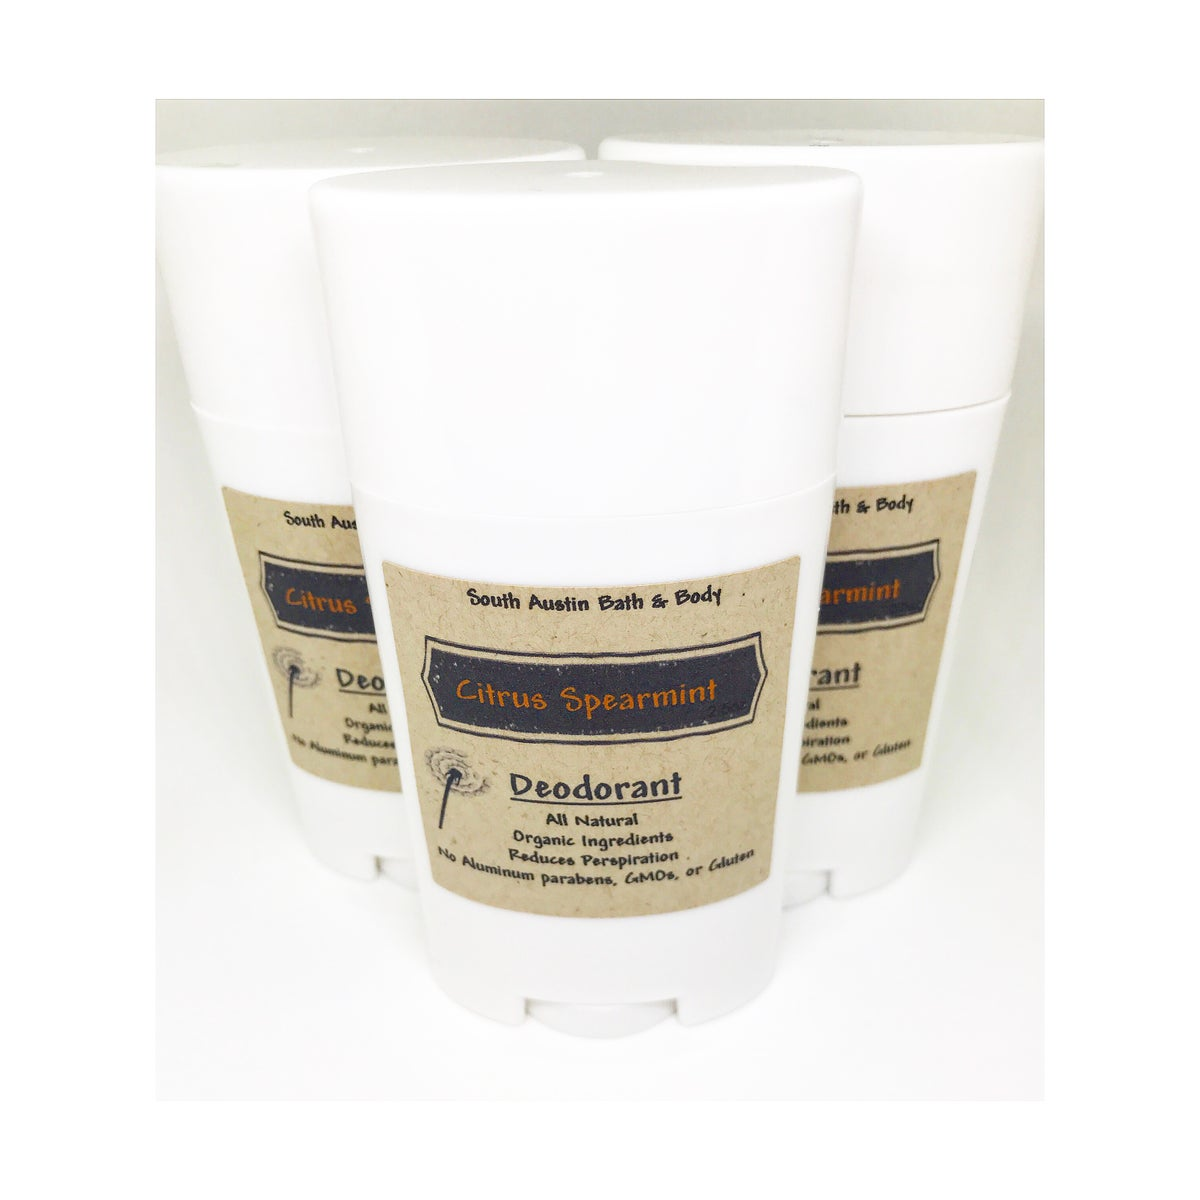 Image of Citrus Spearmint All Natural Chemical Free Deodorant 2.5oz